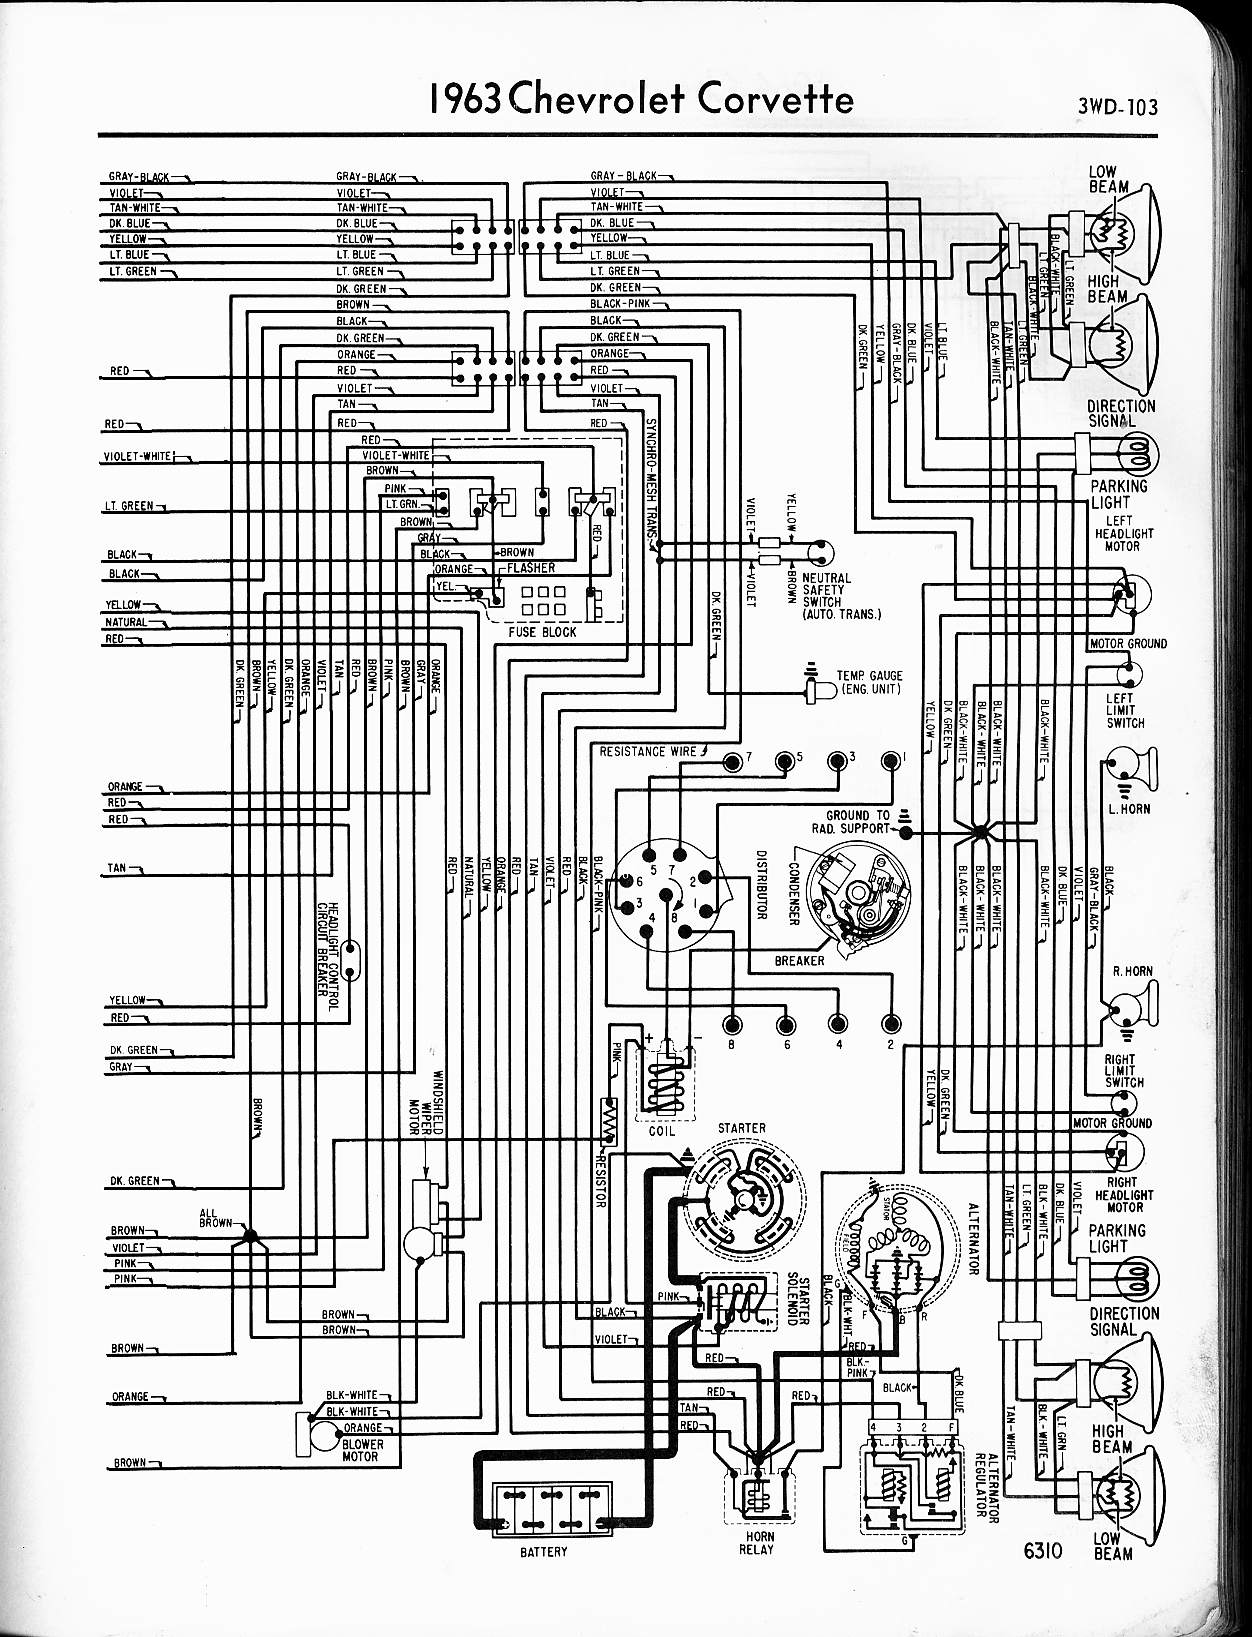 MWireChev63_3WD 103 57 65 chevy wiring diagrams 66 Corvette at highcare.asia